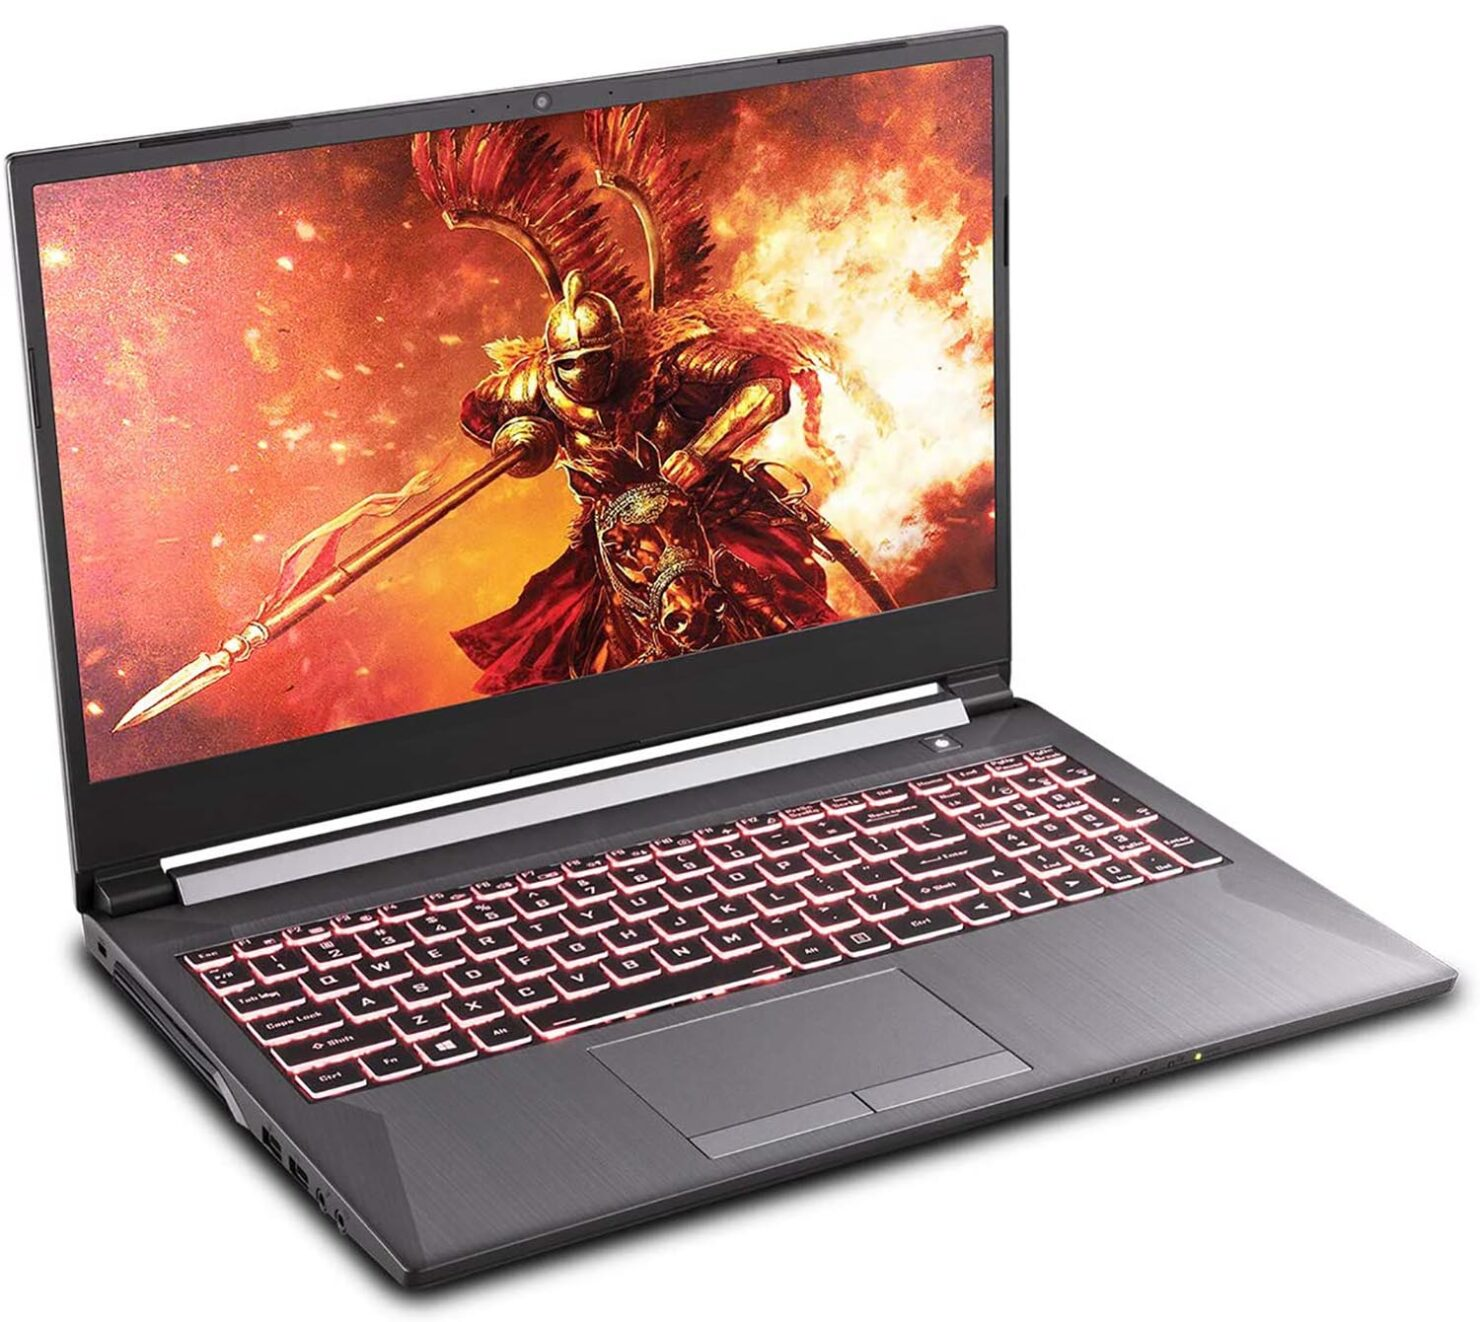 Sager's 15.6-inch Gaming Laptop Is Back in Stock and Cheaper; 8-Core CPU, RTX 2060, NVMe SSD, All for Just $1,249